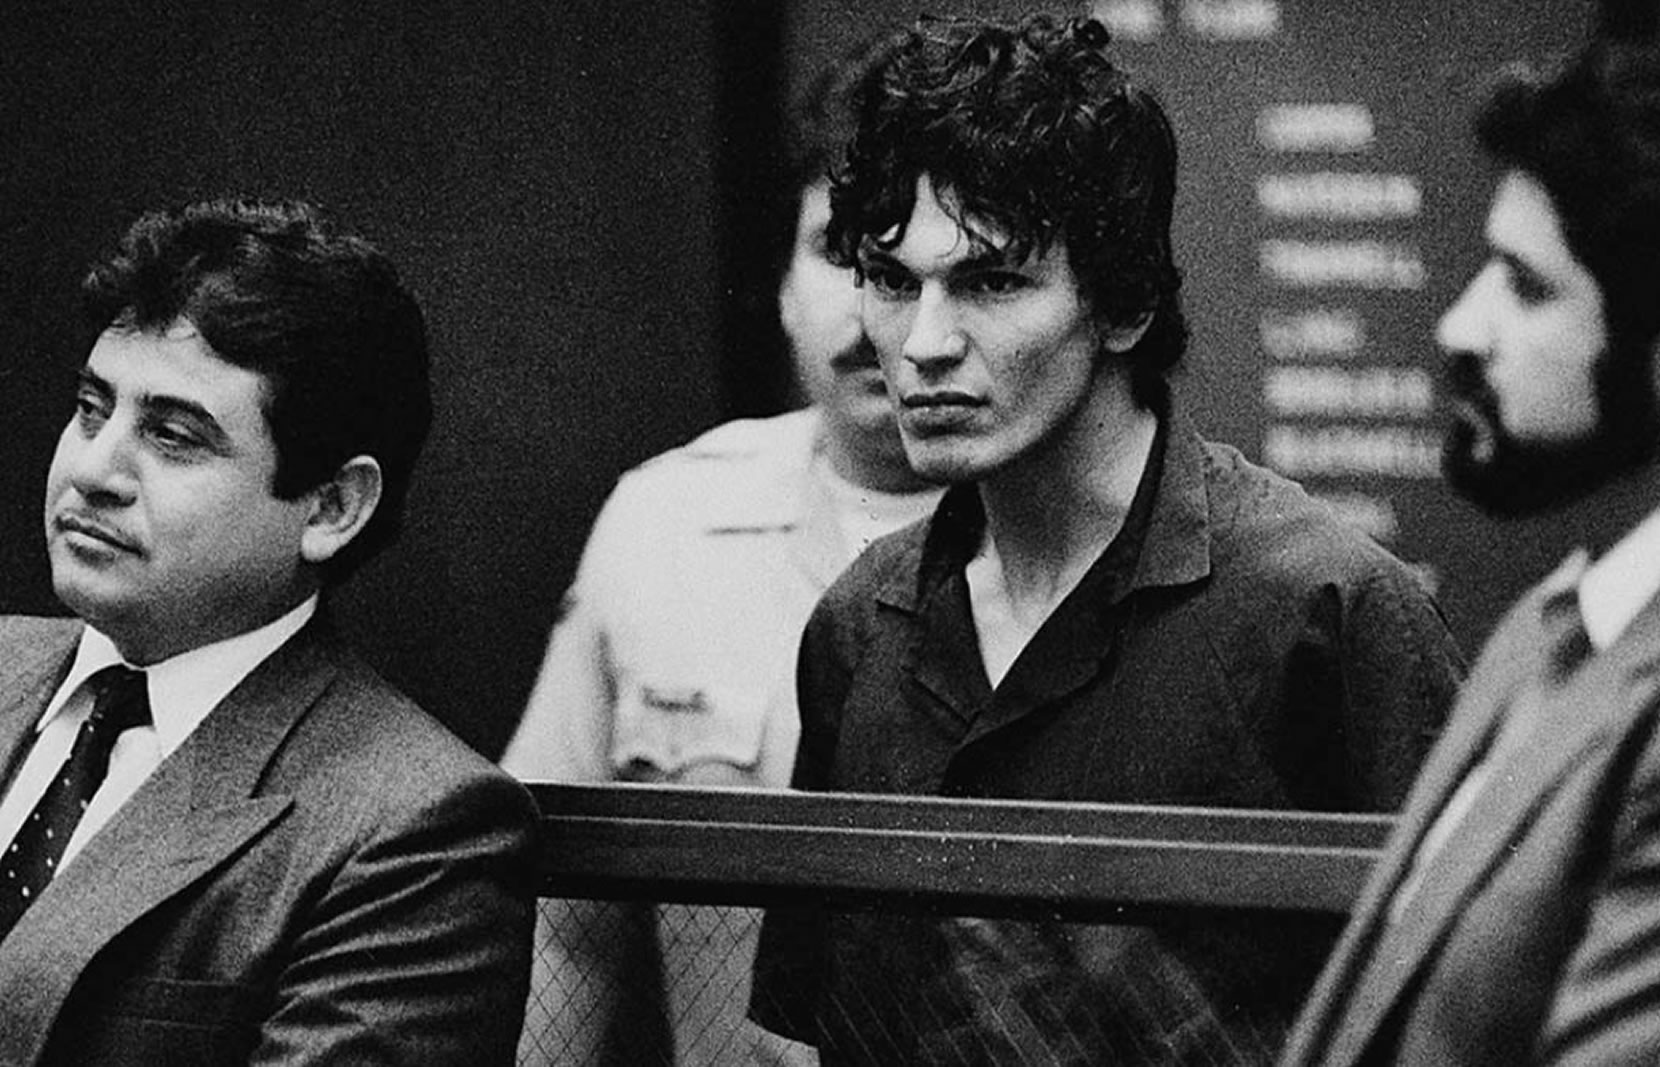 3. A Psicologia Assassina de Richard ramirez